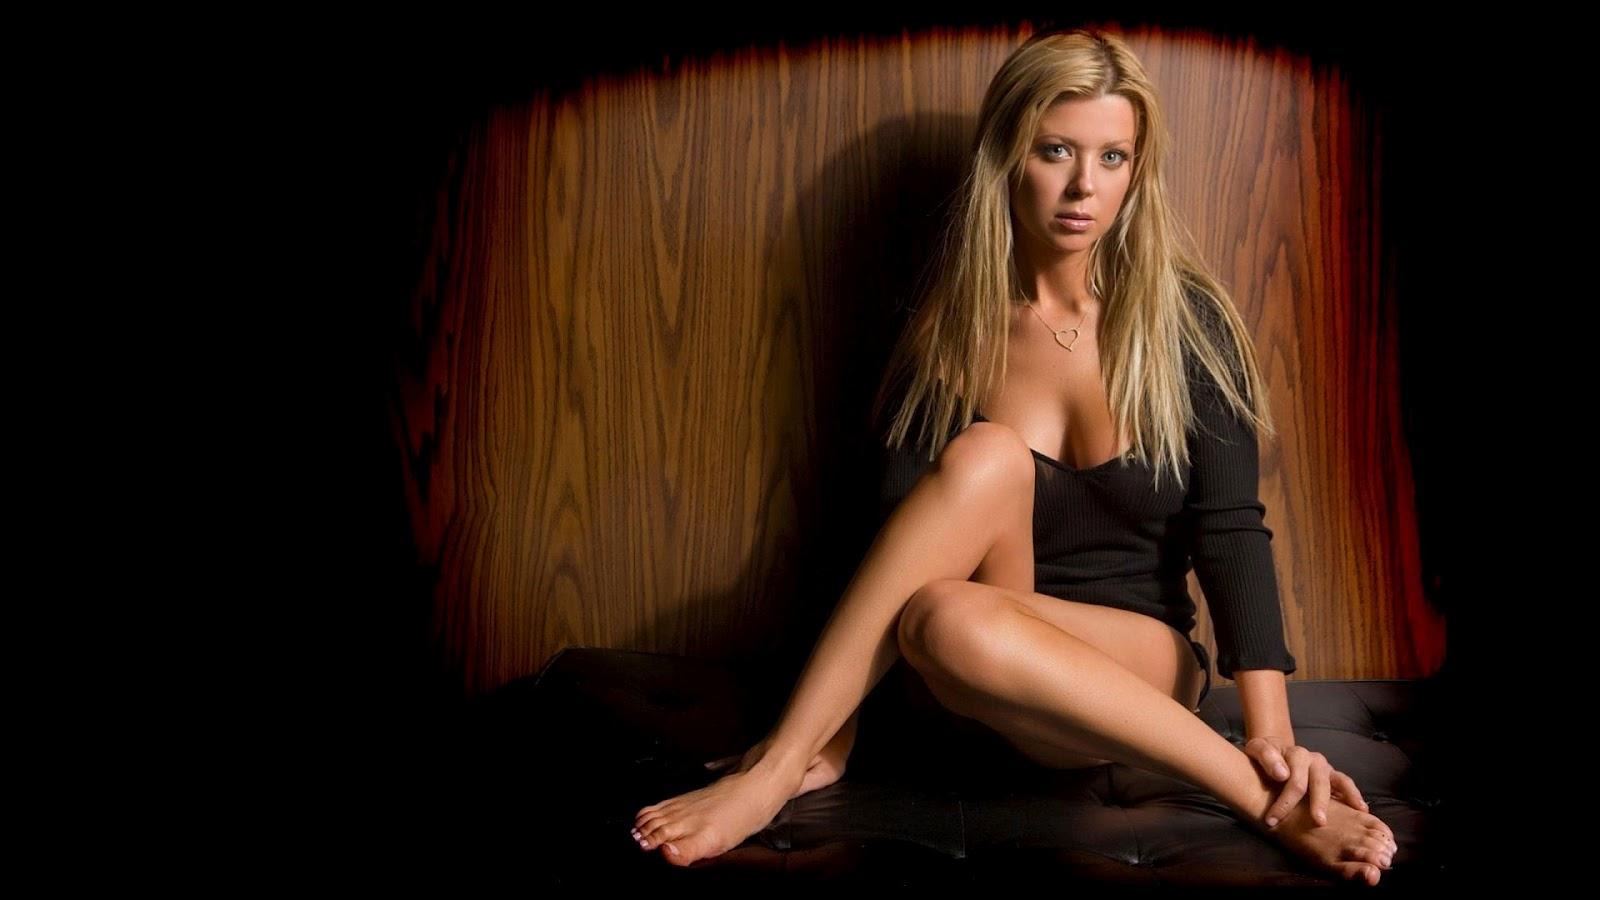 Pictures Tara Reid  HD Wallpaper